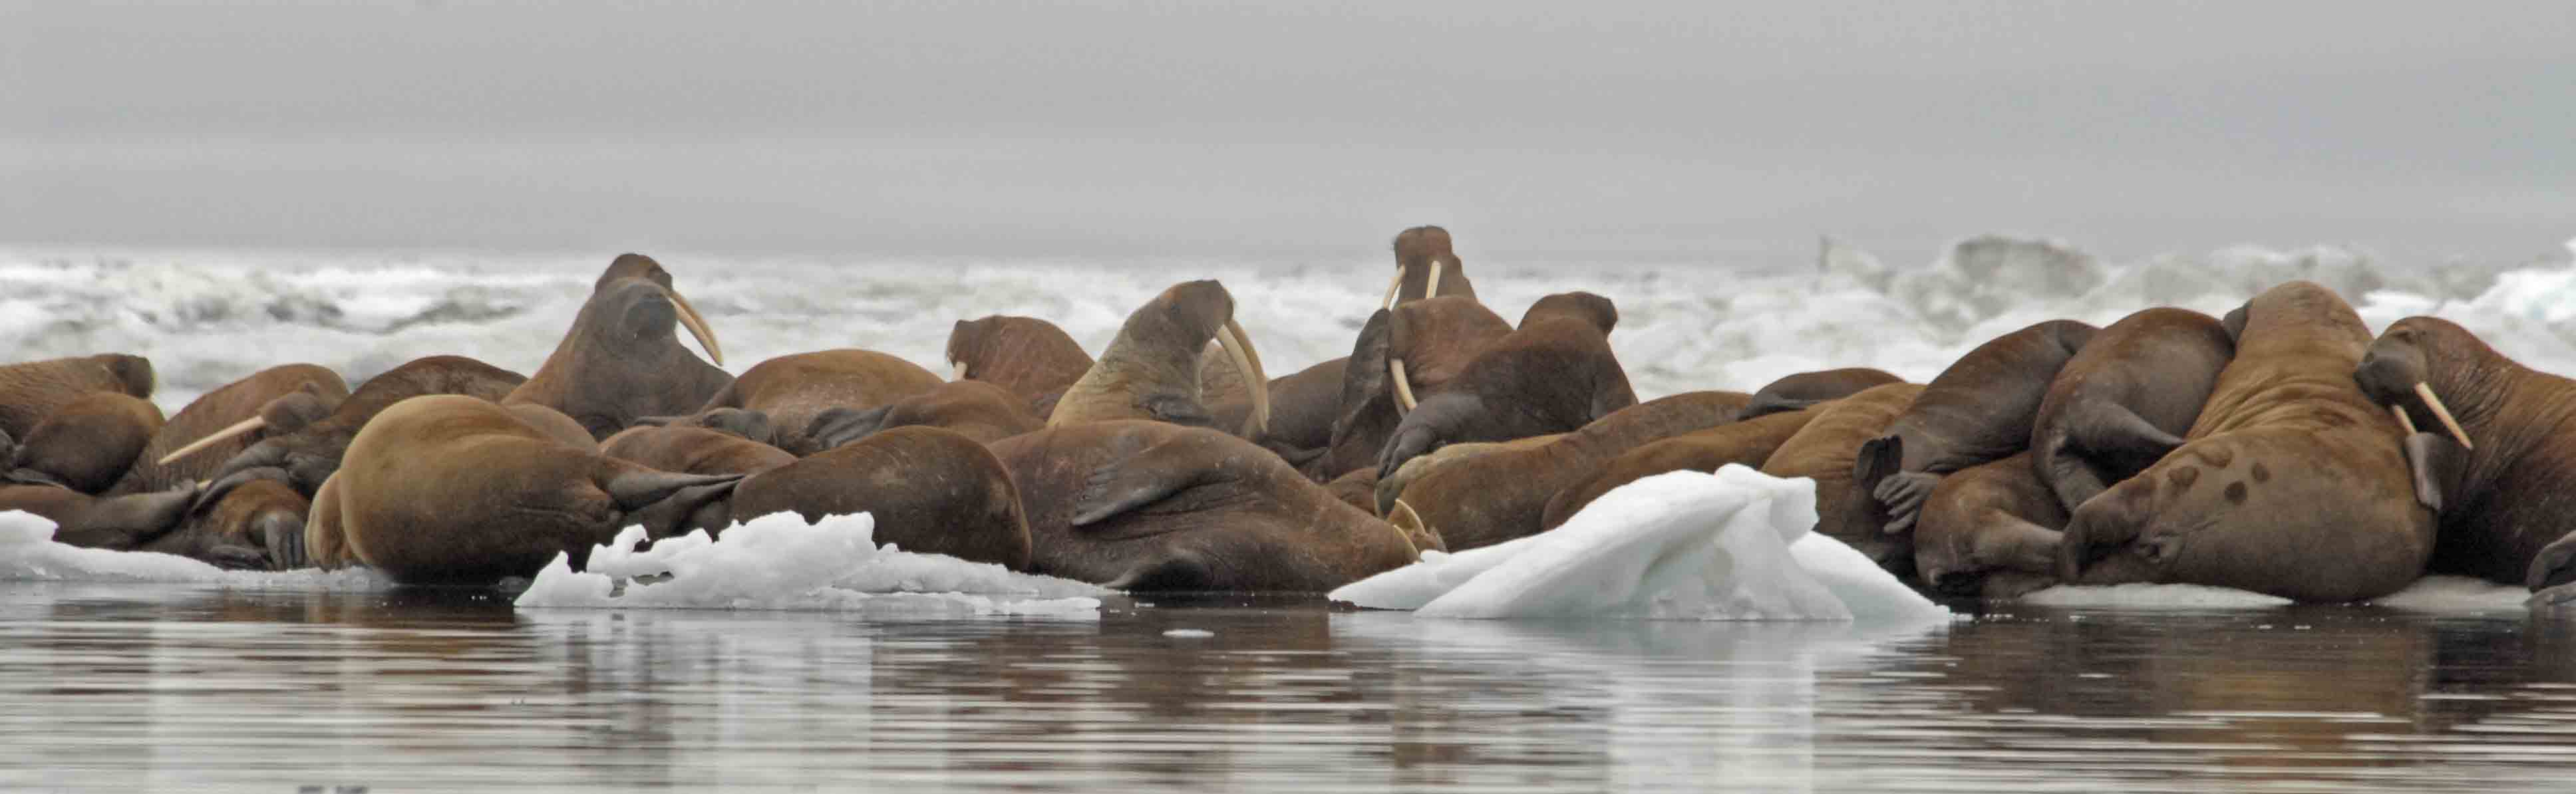 Pacific Walrus on Ice, Wrangel Island